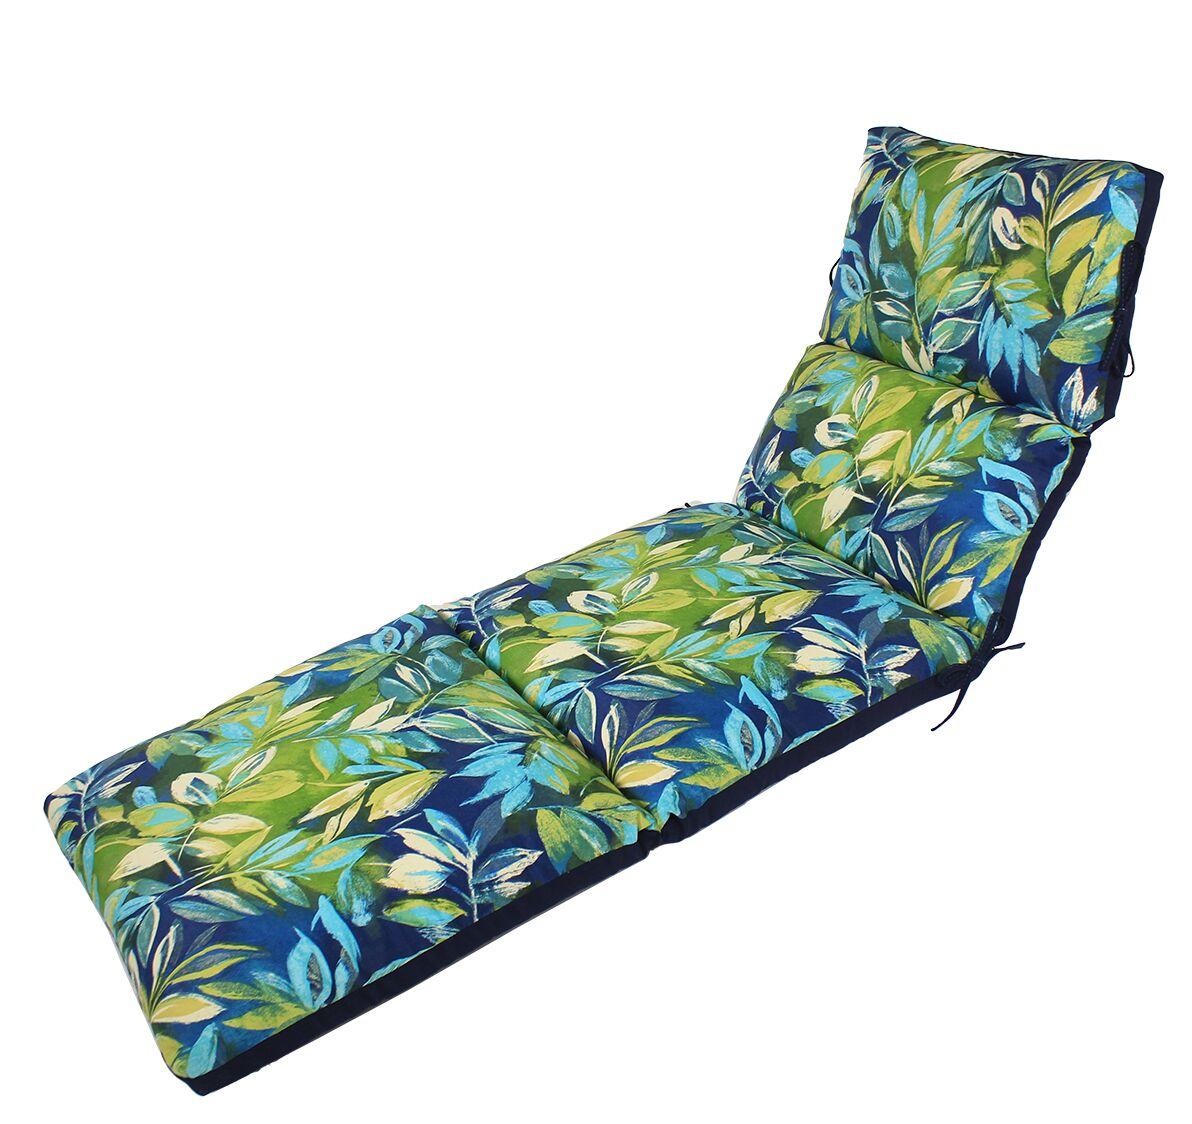 Channeled Reversible Indoor/Outdoor Chaise Lounge Cushion